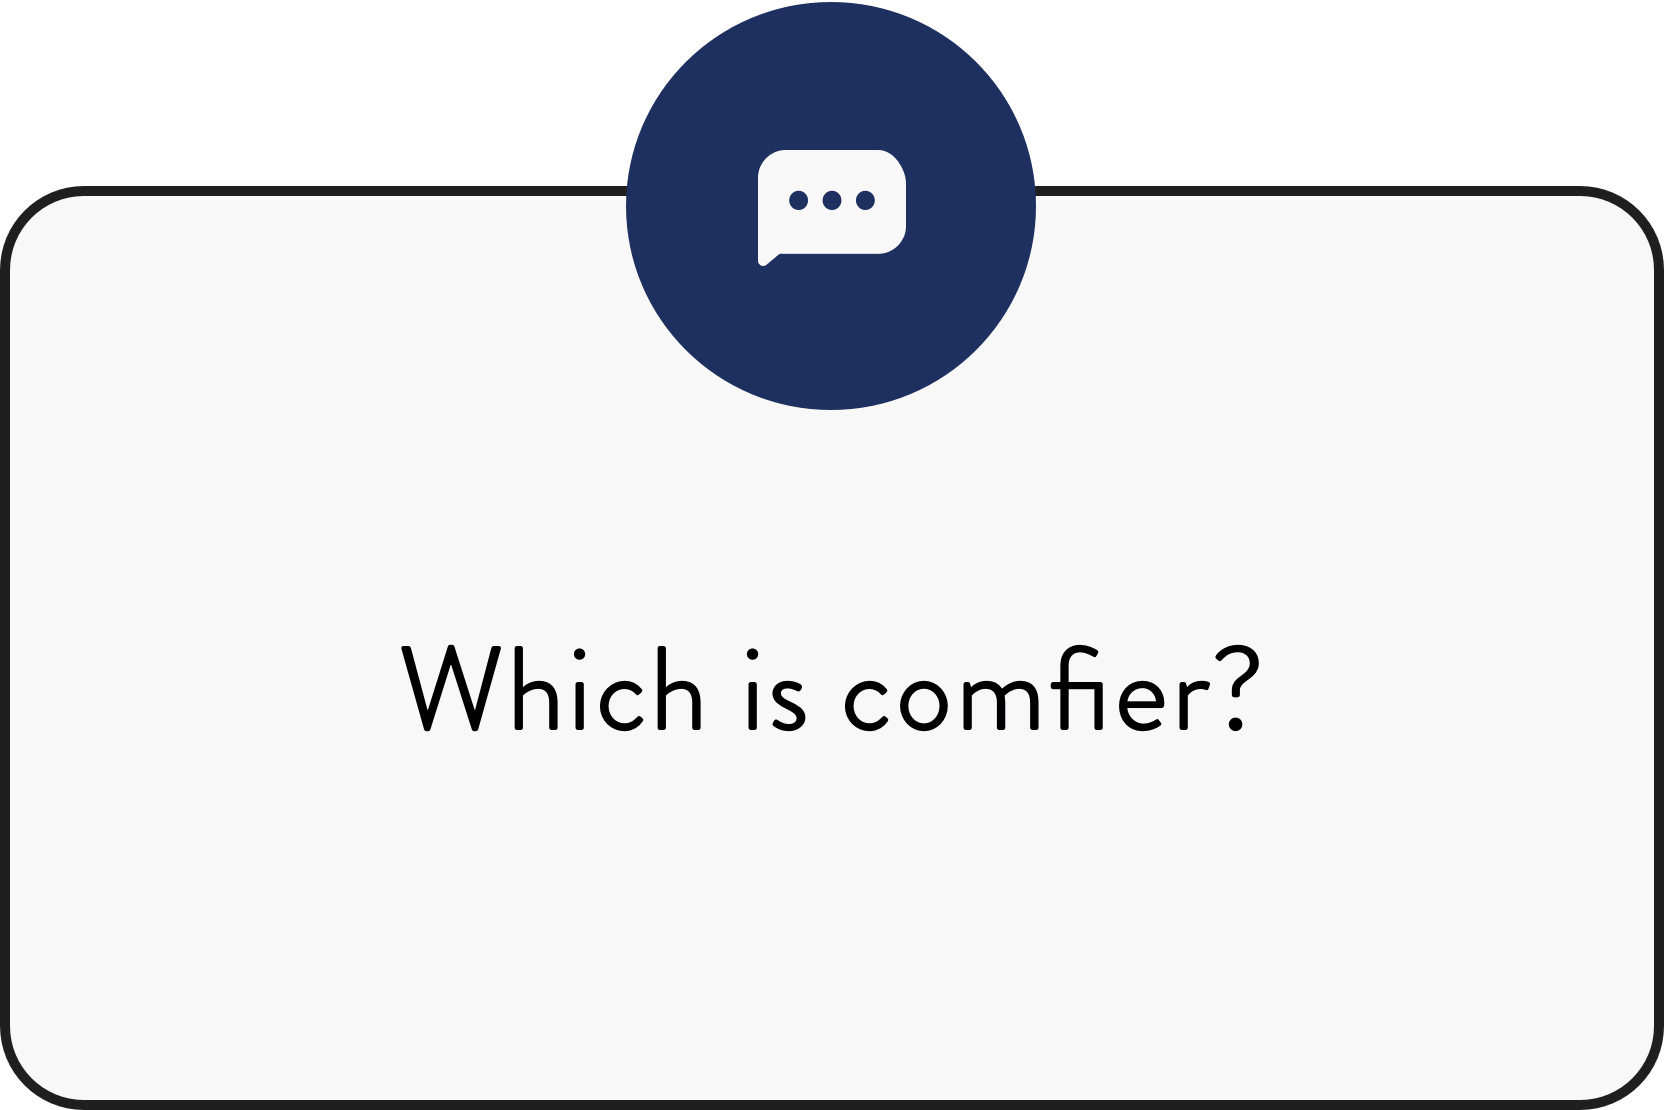 Which Is Comfier